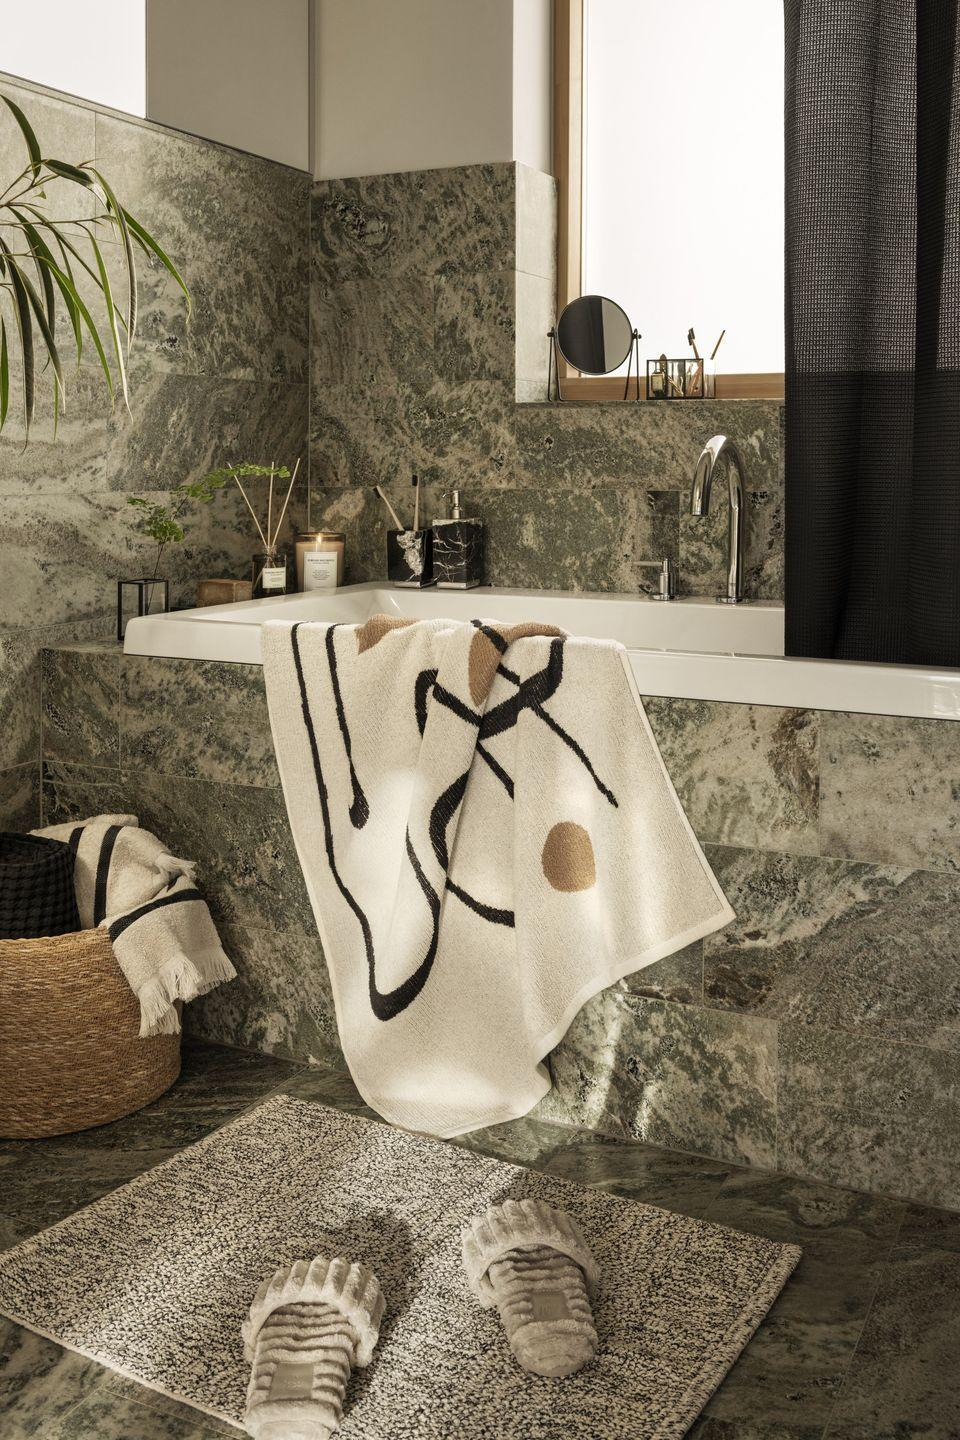 """<p>A bathroom can often be the harshest feeling room in the house, however, adding soft, textured bath mats and abstract towels is a chic way of bringing in extra warmth and wrapping yourself up in comfort. </p><p><a class=""""link rapid-noclick-resp"""" href=""""https://go.redirectingat.com?id=127X1599956&url=https%3A%2F%2Fwww2.hm.com%2Fen_gb%2Fhome%2Fshop-by-room%2Fbathroom.html&sref=https%3A%2F%2Fwww.prima.co.uk%2Fhome-ideas%2Fhome-accessories-buys%2Fg37325647%2Fhandm-home-autumn-collection%2F"""" rel=""""nofollow noopener"""" target=""""_blank"""" data-ylk=""""slk:Shop more bathroom interiors at H&M"""">Shop more bathroom interiors at H&M</a></p>"""